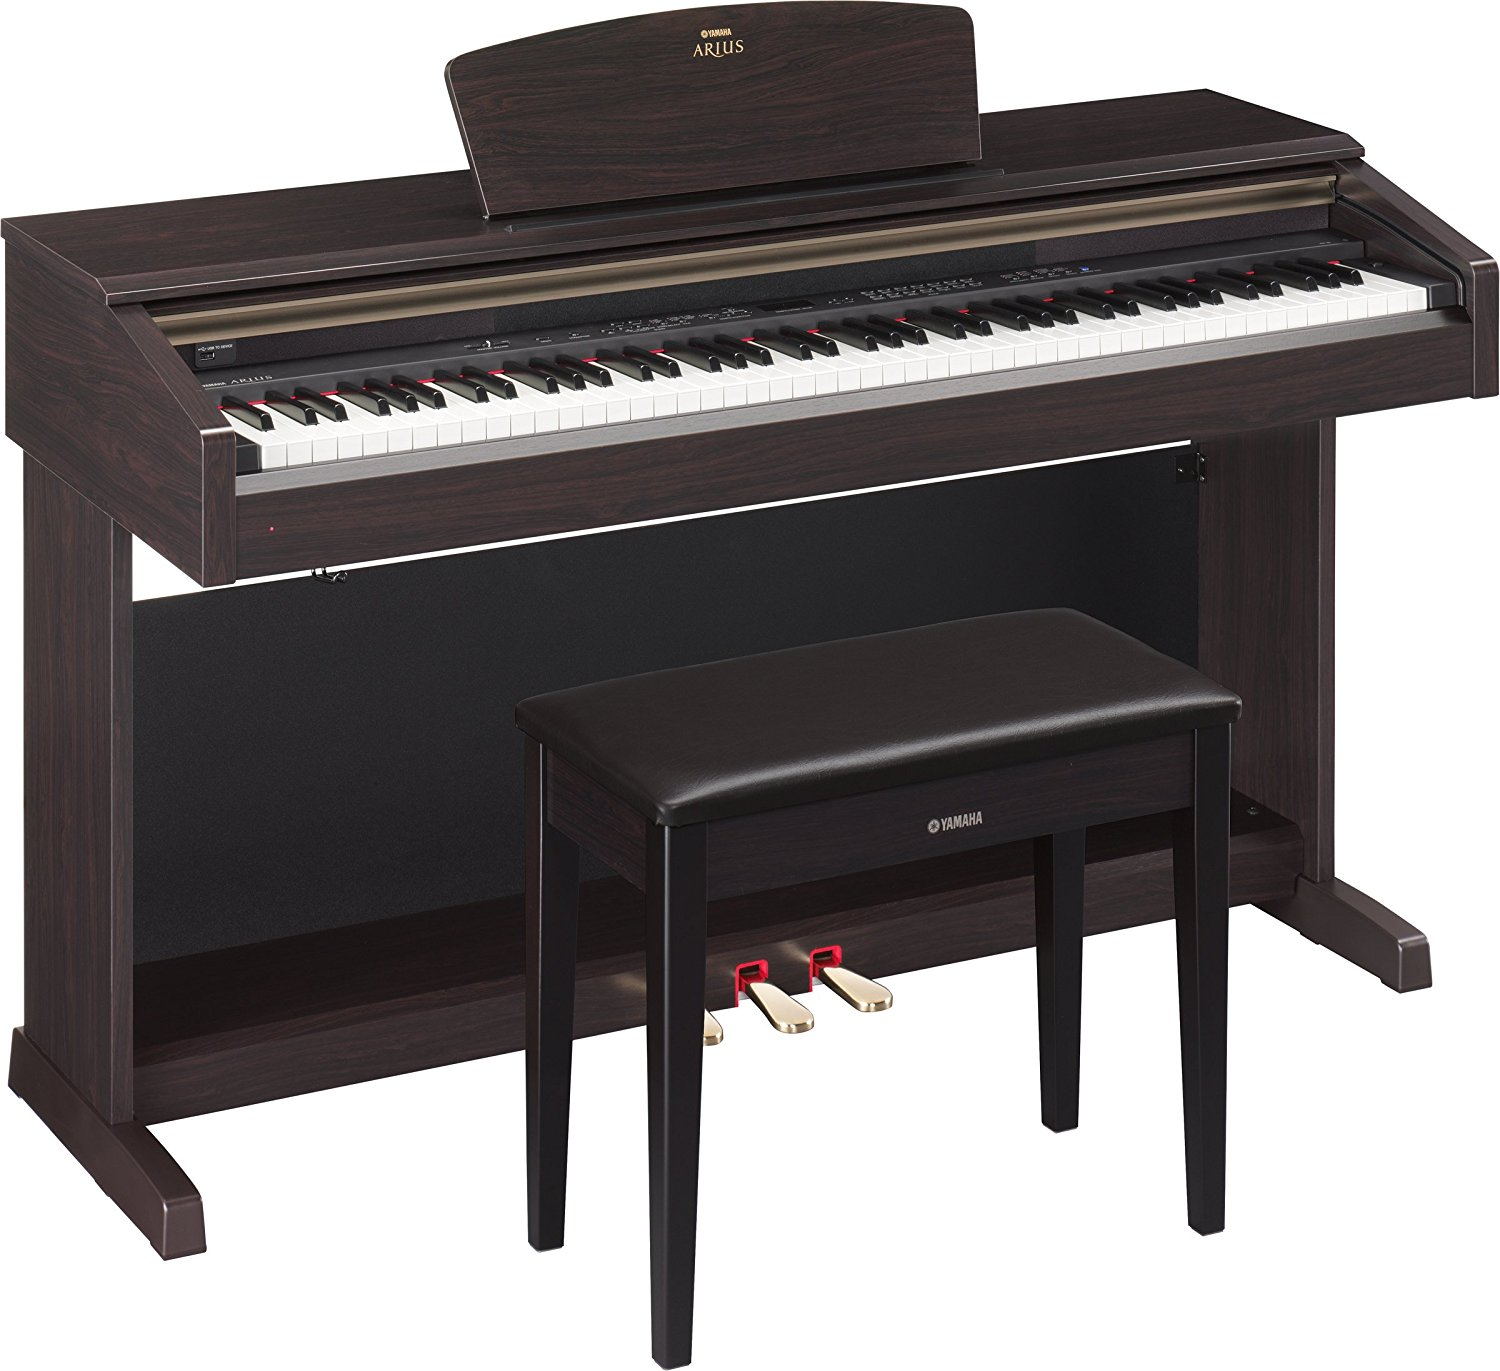 Yamaha YDP 181 Review 2018: Specs & Features